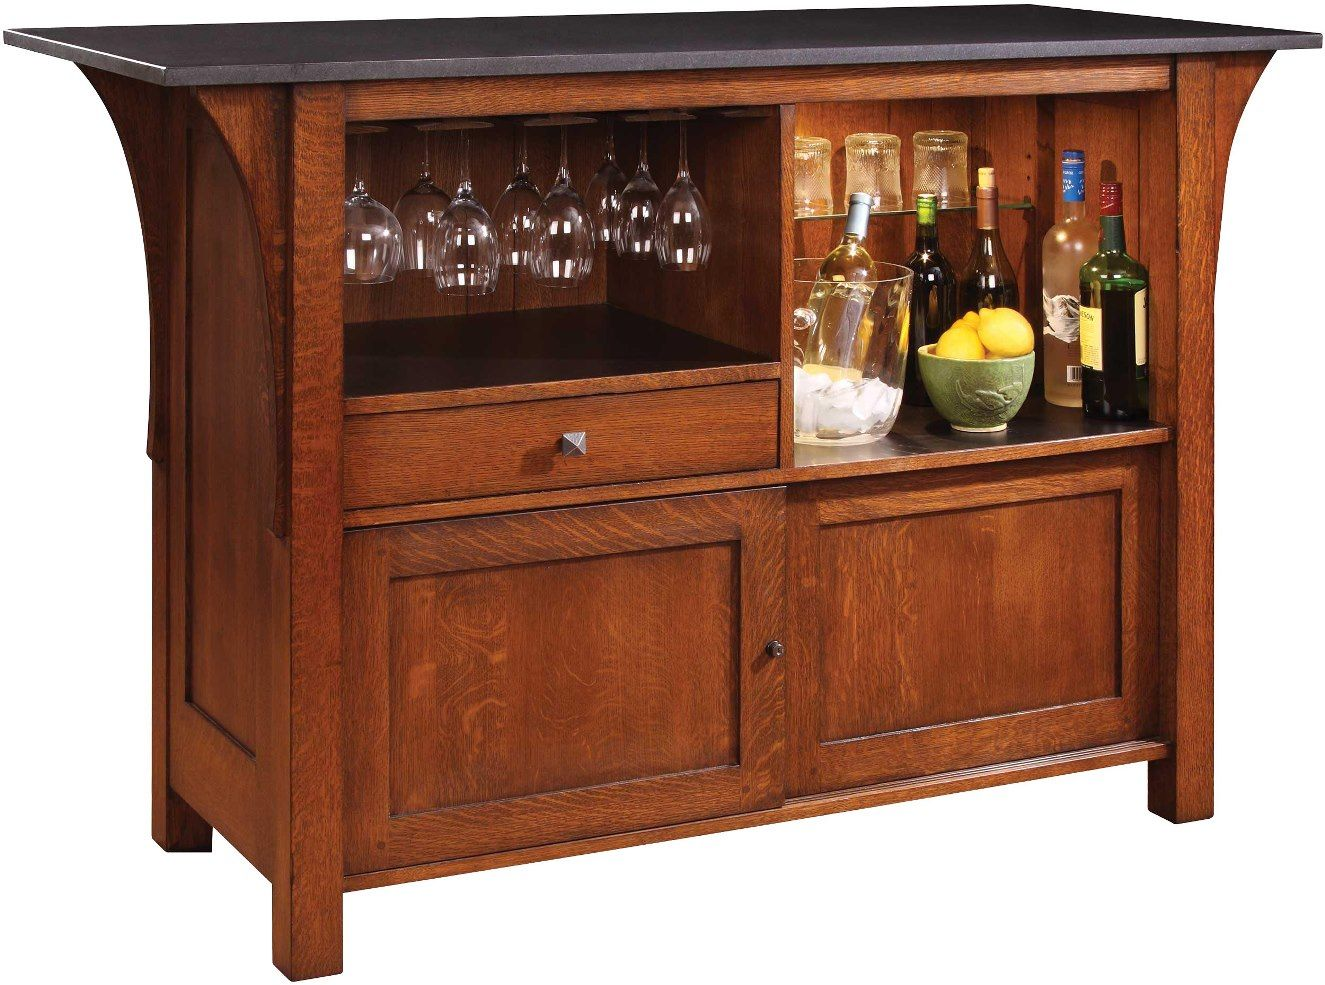 Prairie Style Kitchen Cabinets Green Green Wine And Liquor Cabinet Readers Gallery Fine